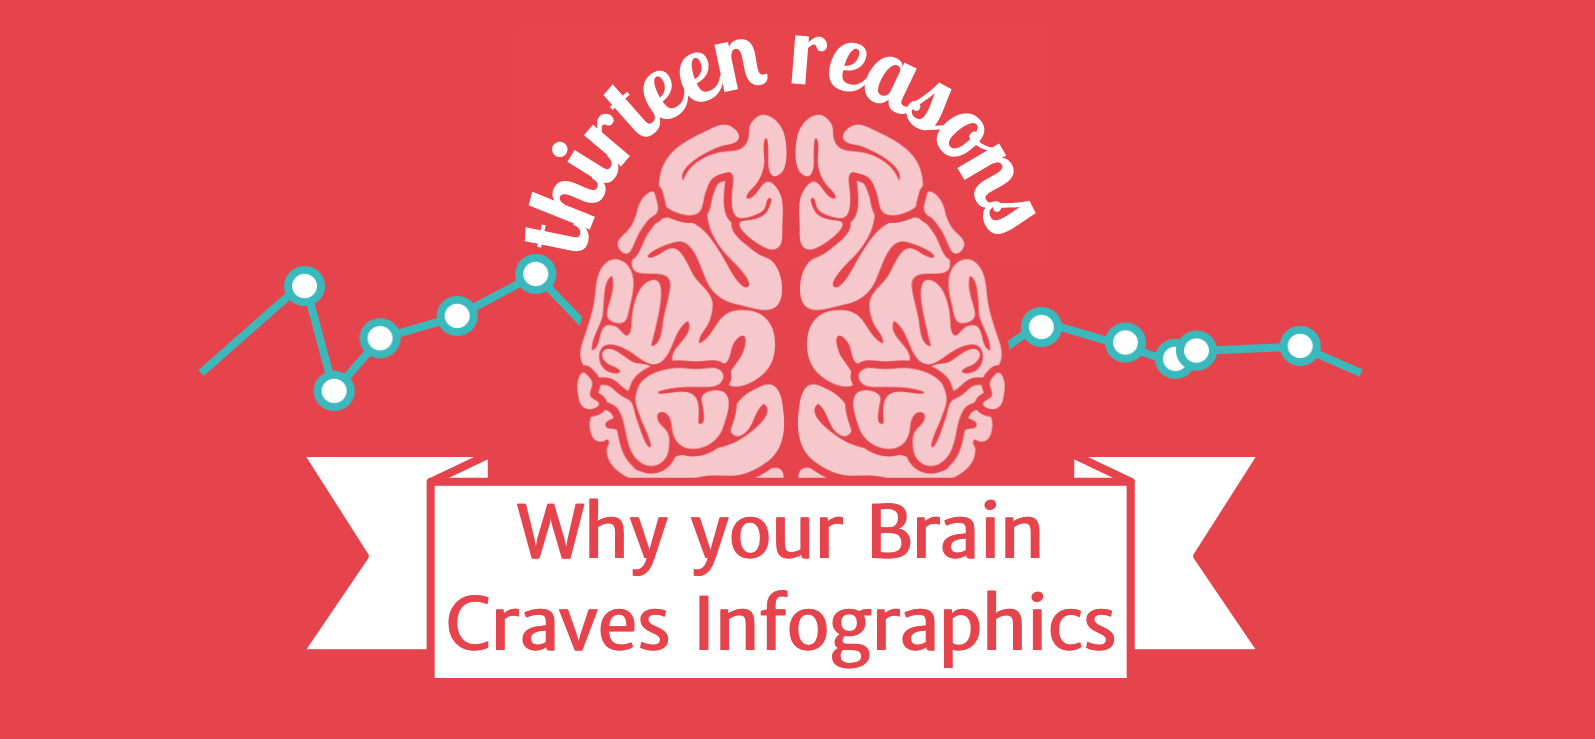 Image: Why Your Brain Craves Infographics